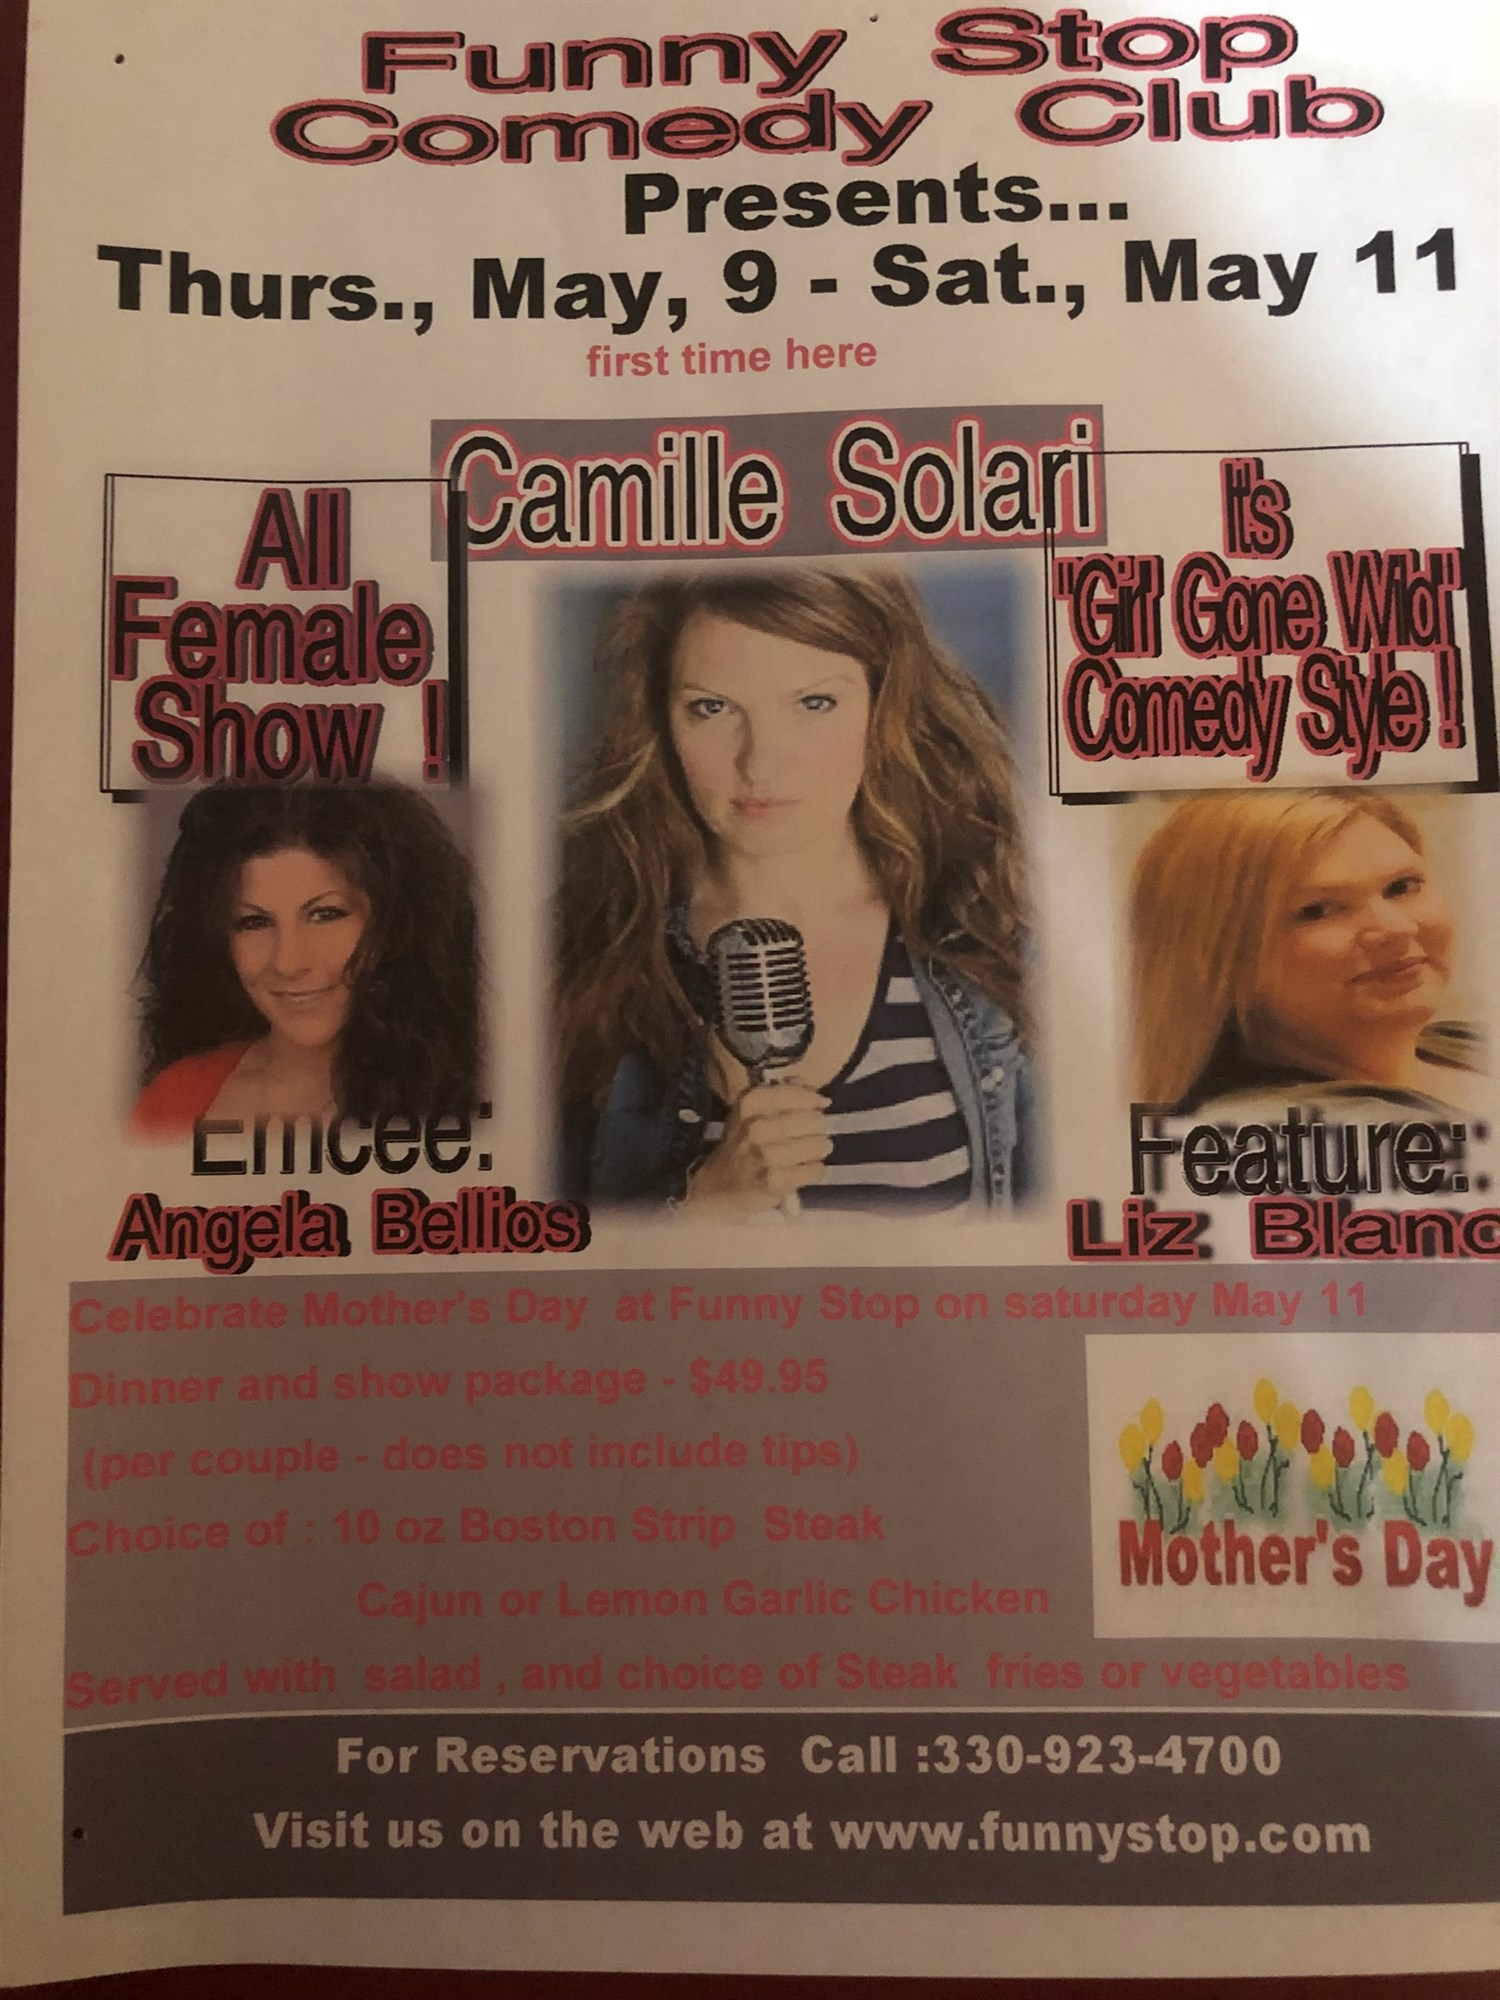 Camiile Solari / Liz Blanc 7:30 Show Mothers Day Weekend All Women Line Up on May 11, 19:30@Funny Stop Comedy Club - Buy tickets and Get information on Funny Stop funnystop.online